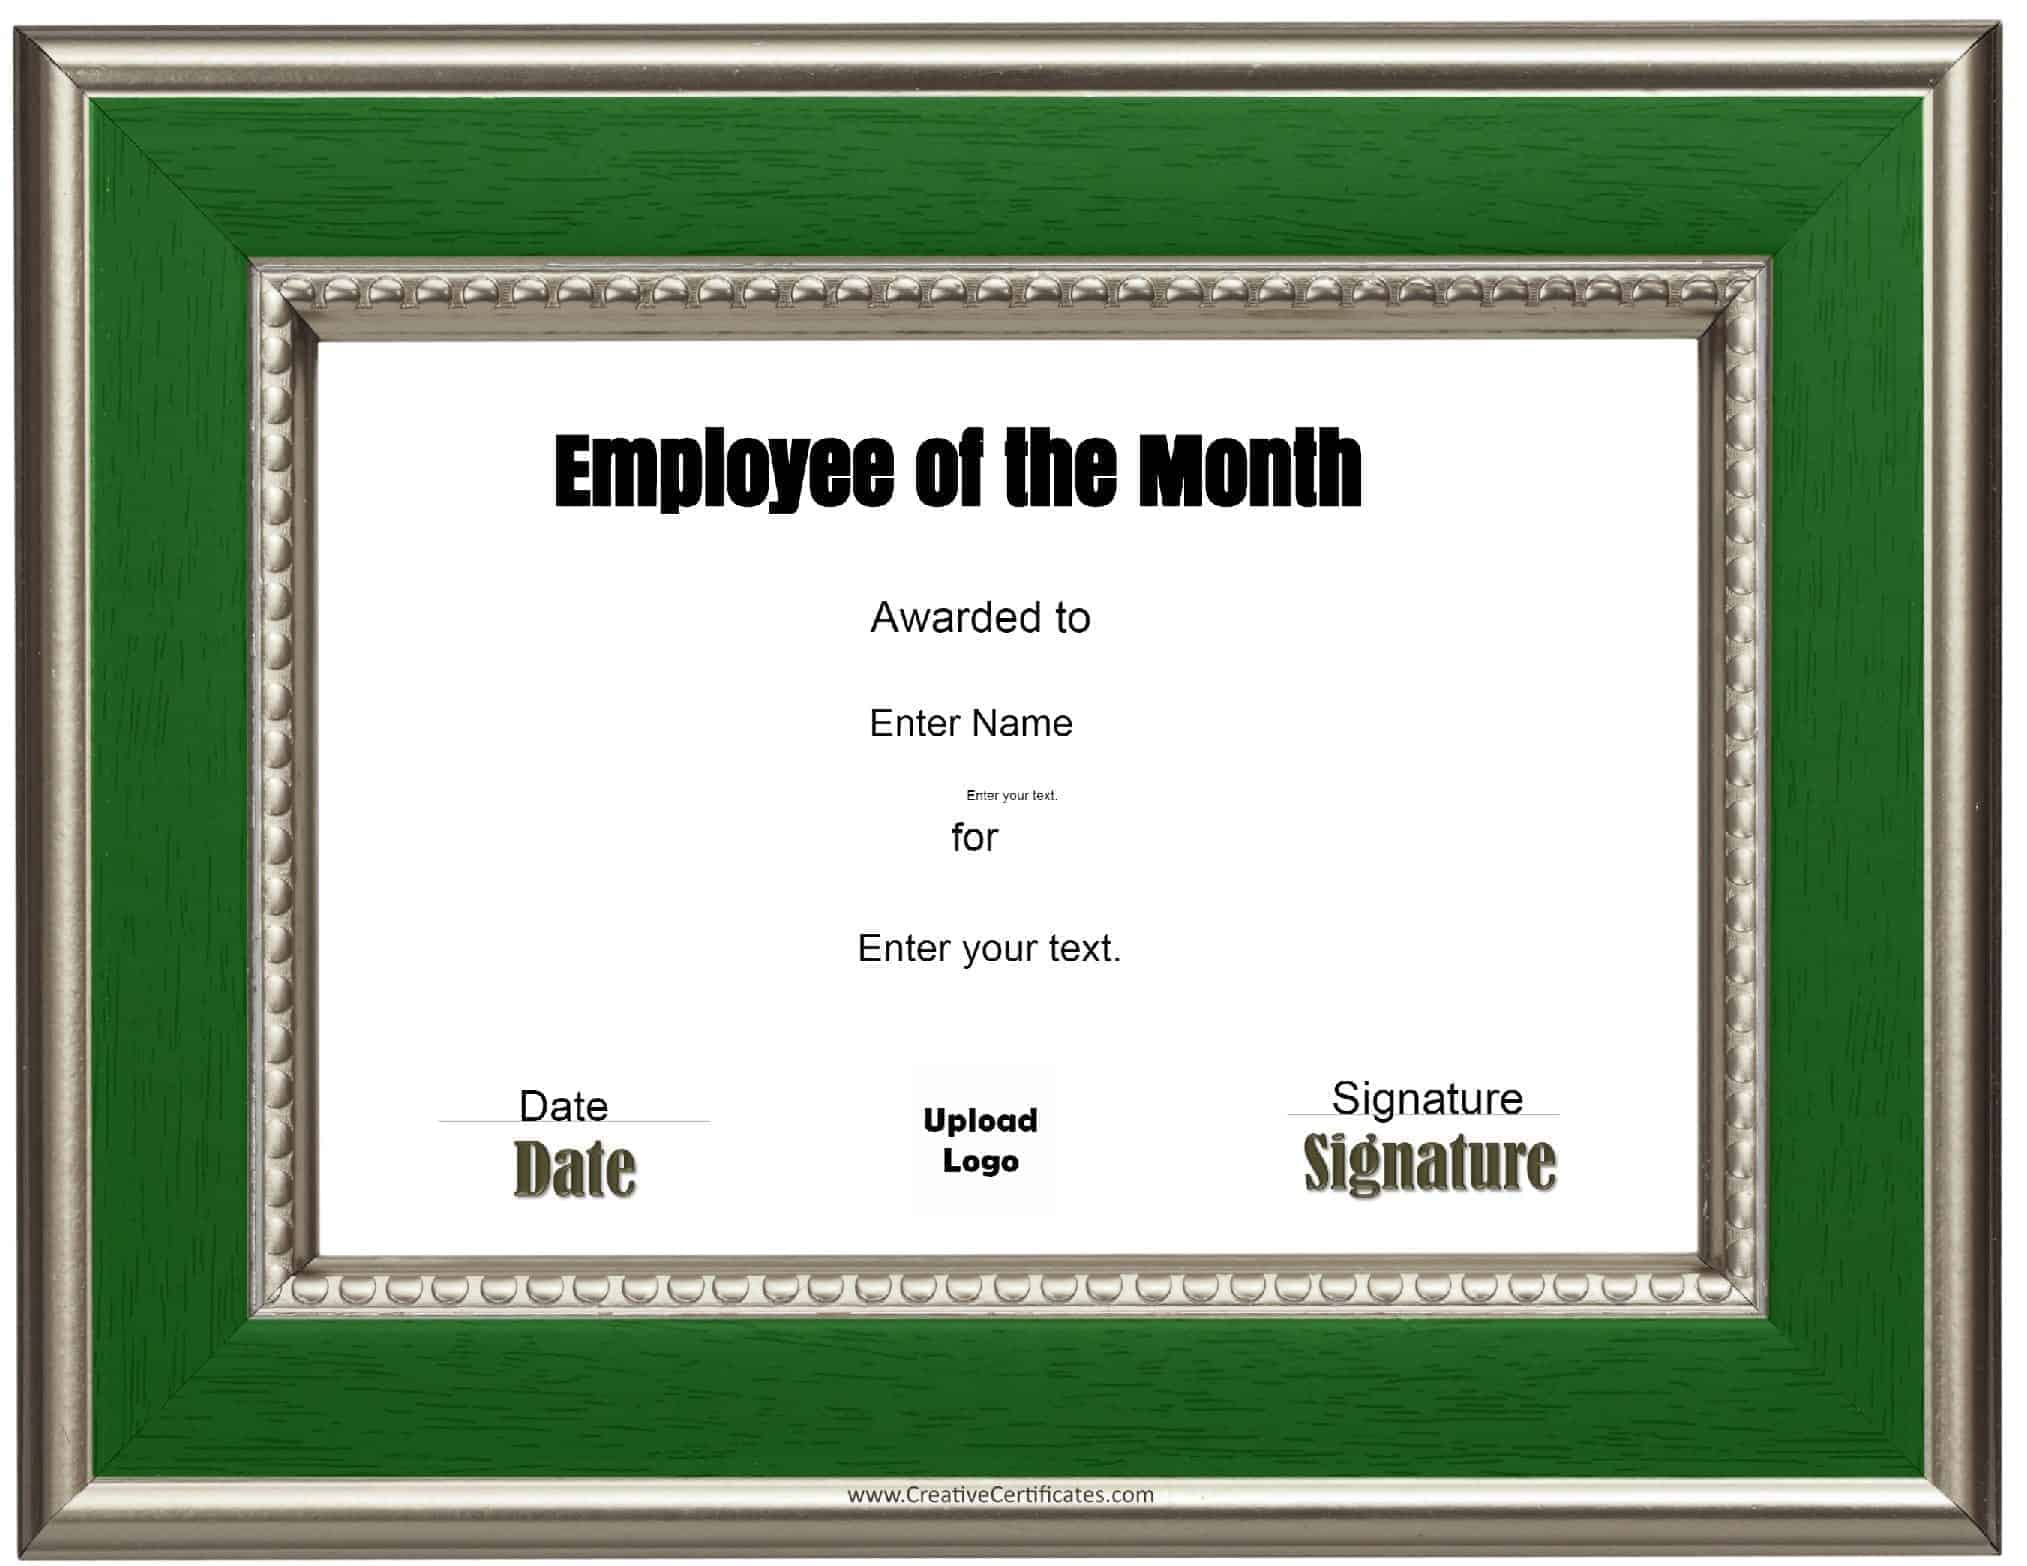 Free custom employee of the month certificate printable award plaque xflitez Images